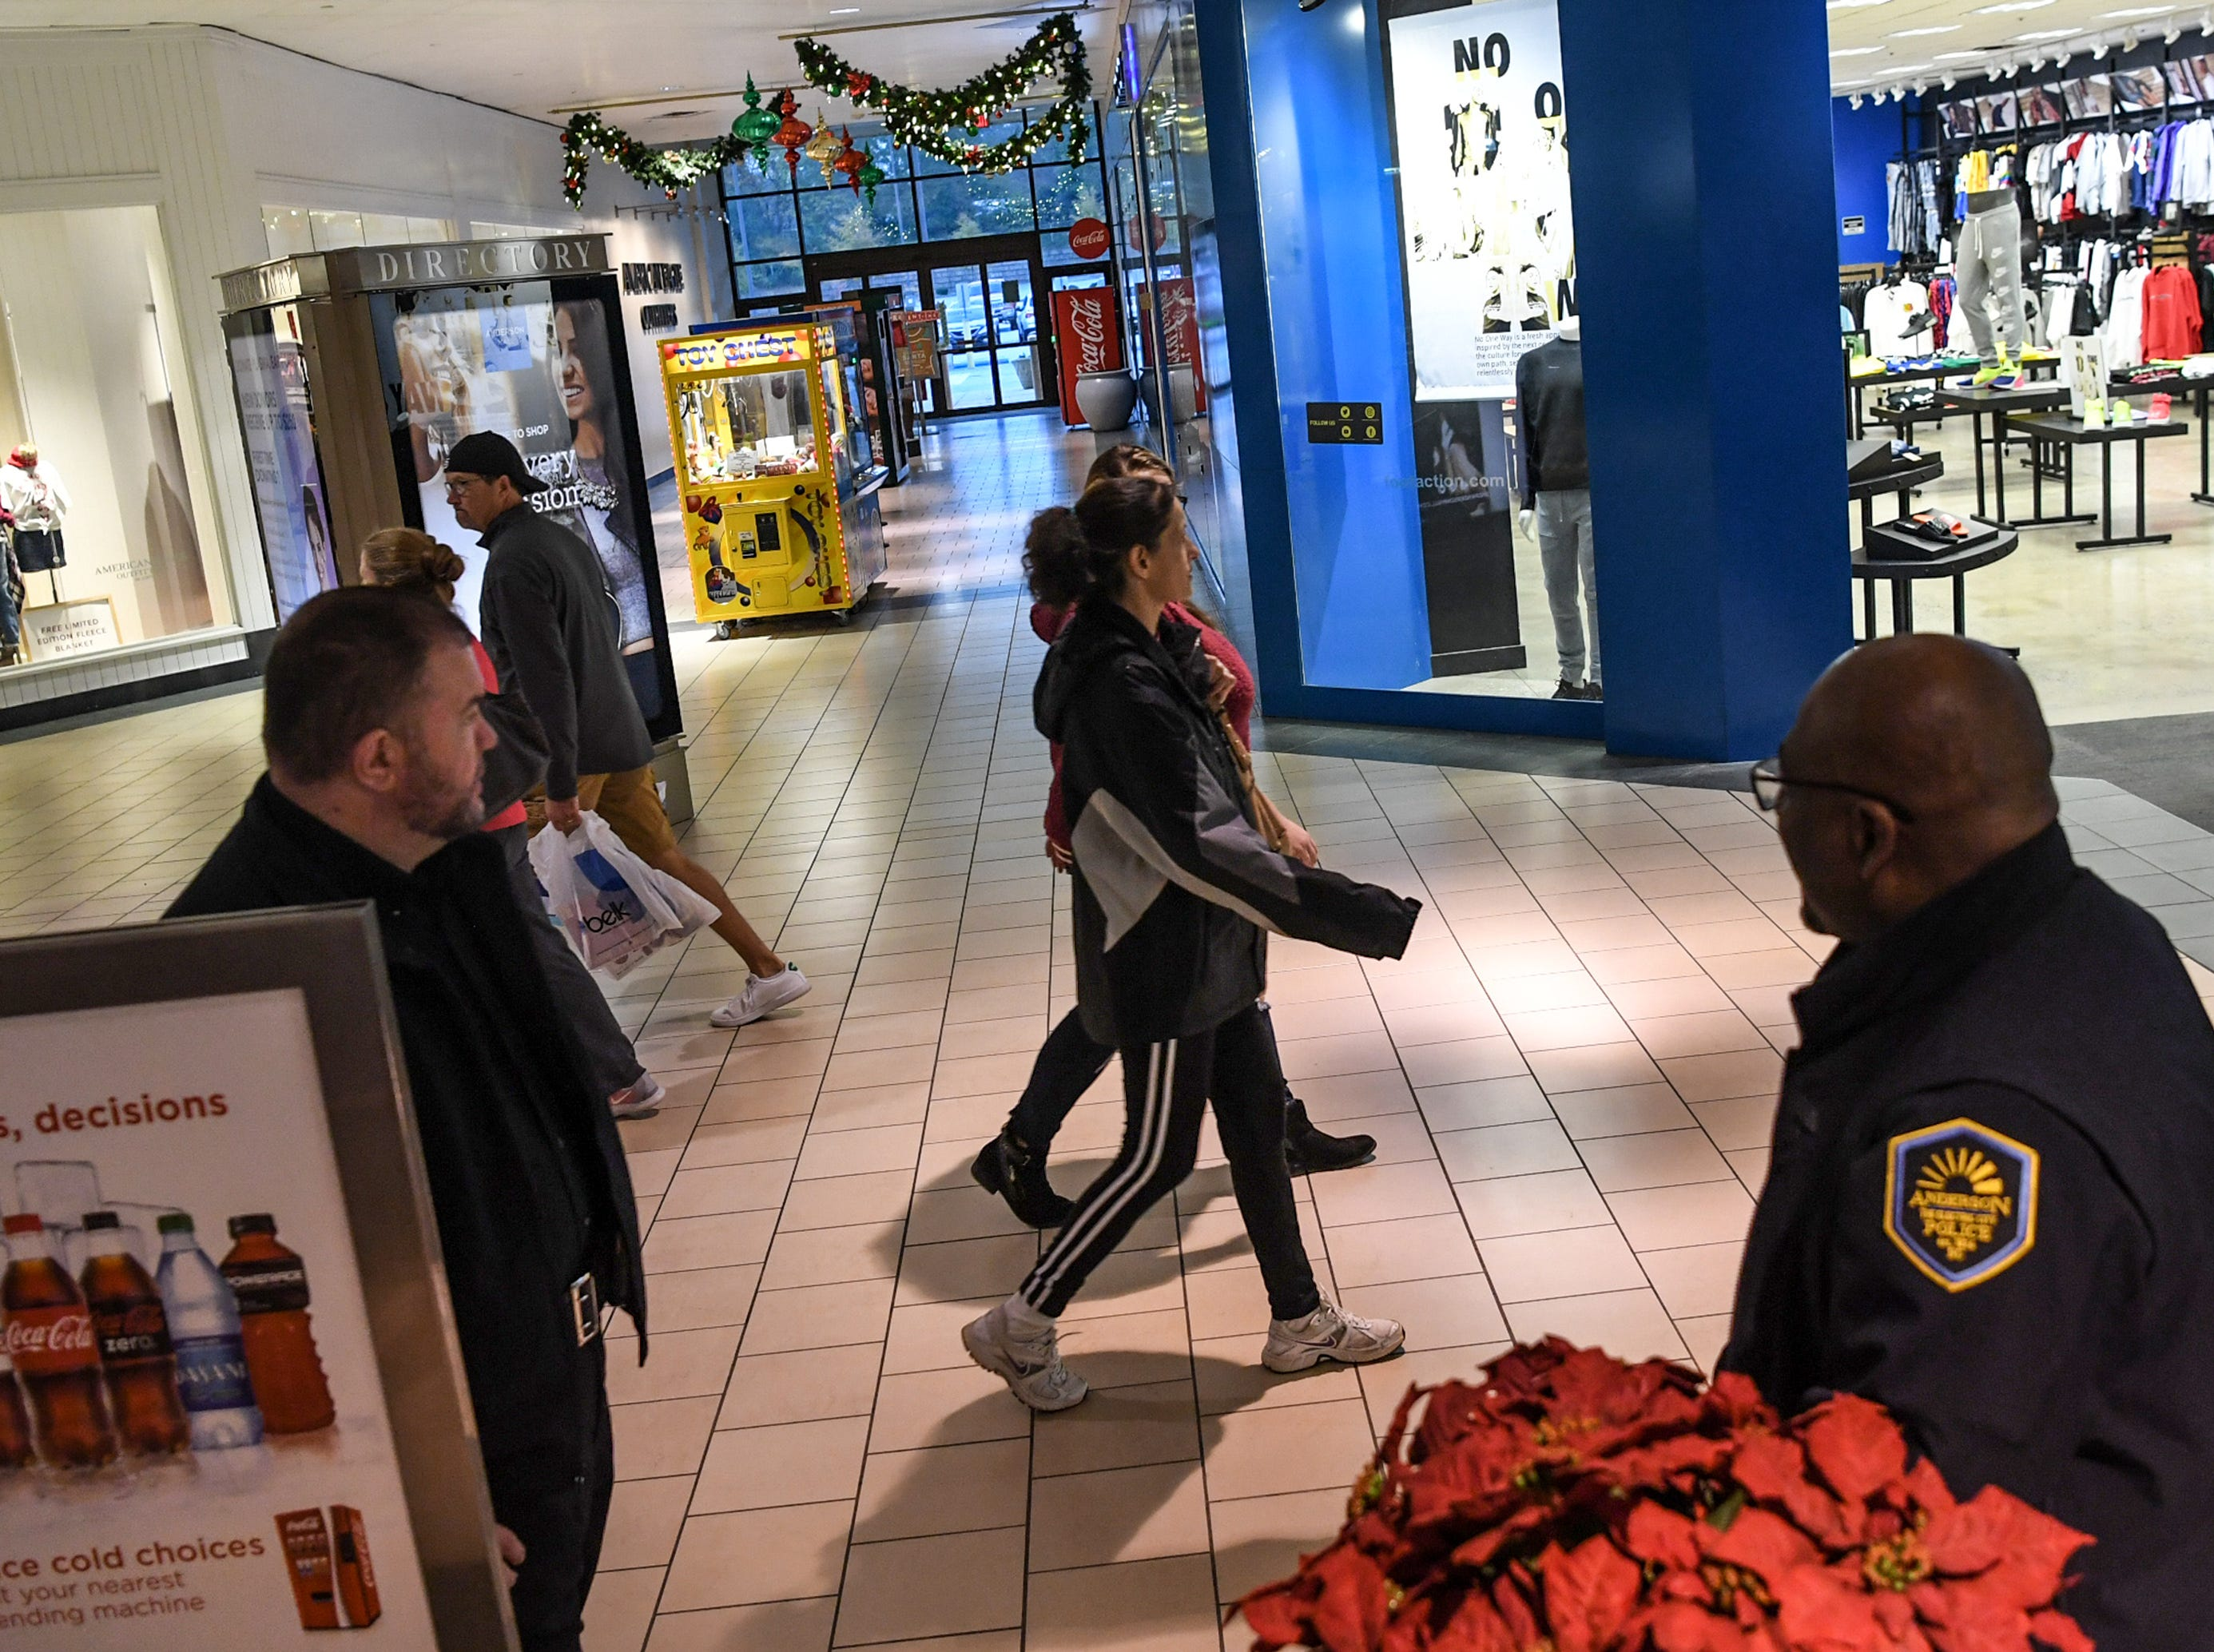 Shoppers walk by Anderson police during Black Friday sales in Anderson on Friday, November 23, 2018.